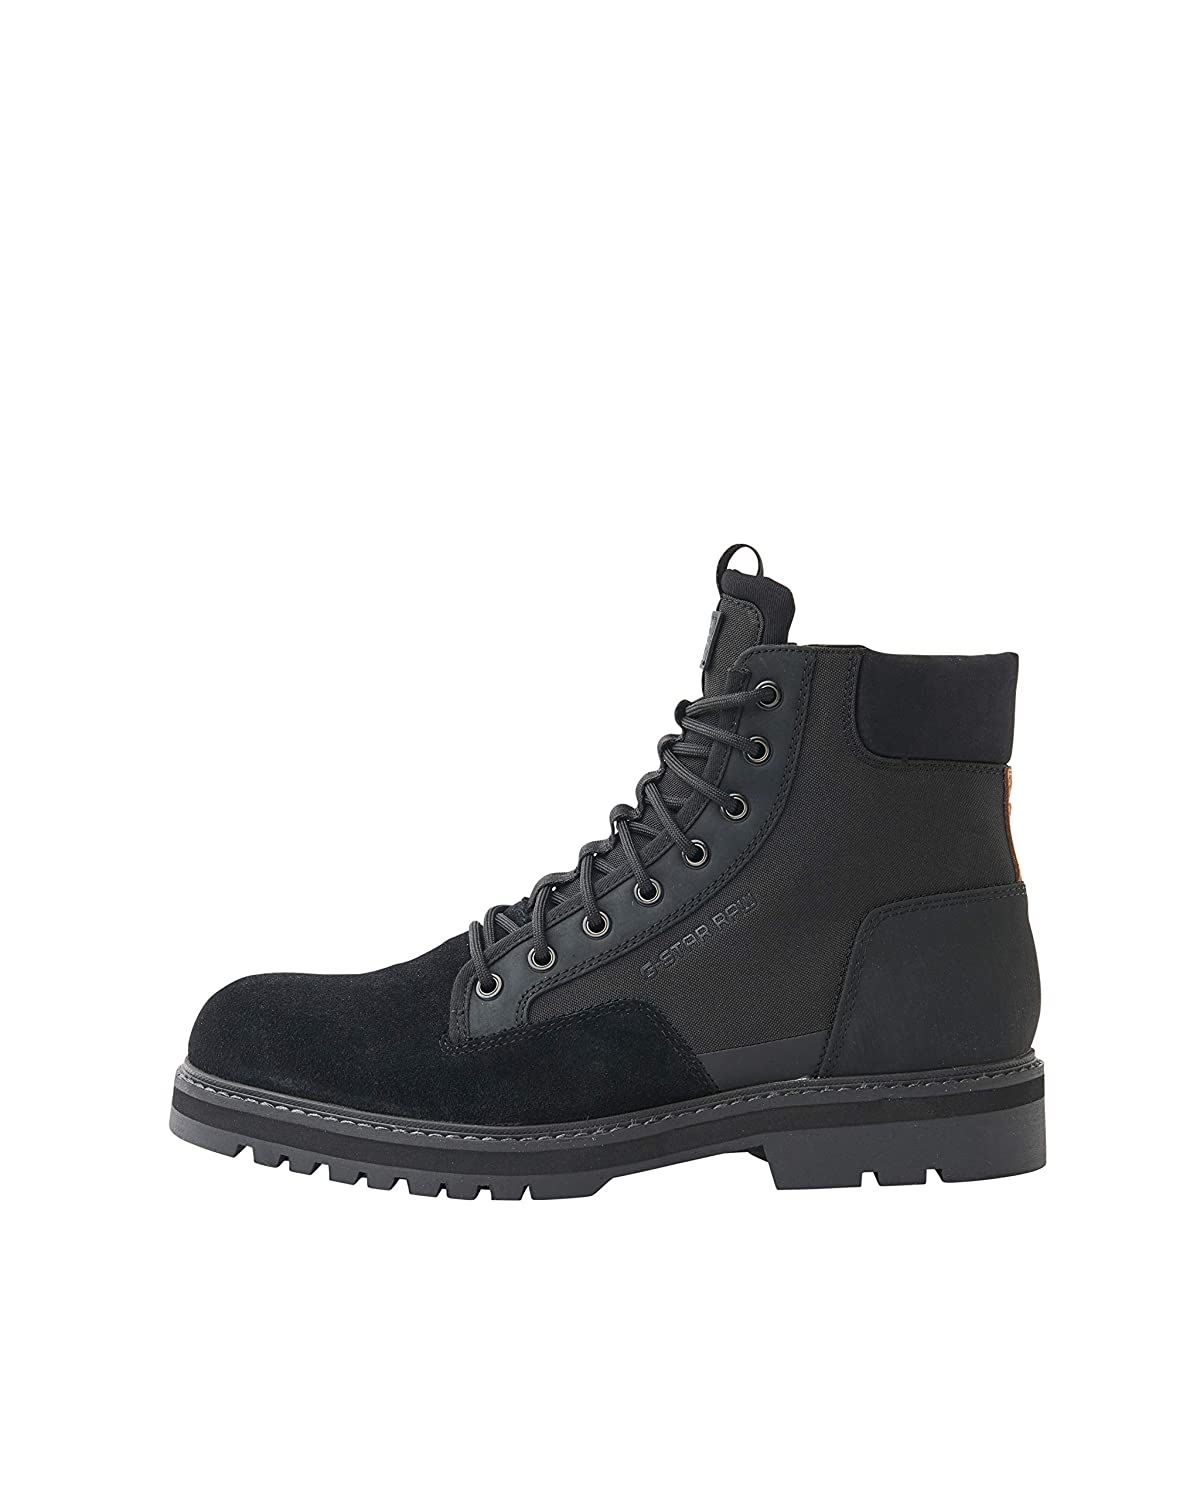 G-STAR RAW Powel Boot, Botas Clasicas para Hombre